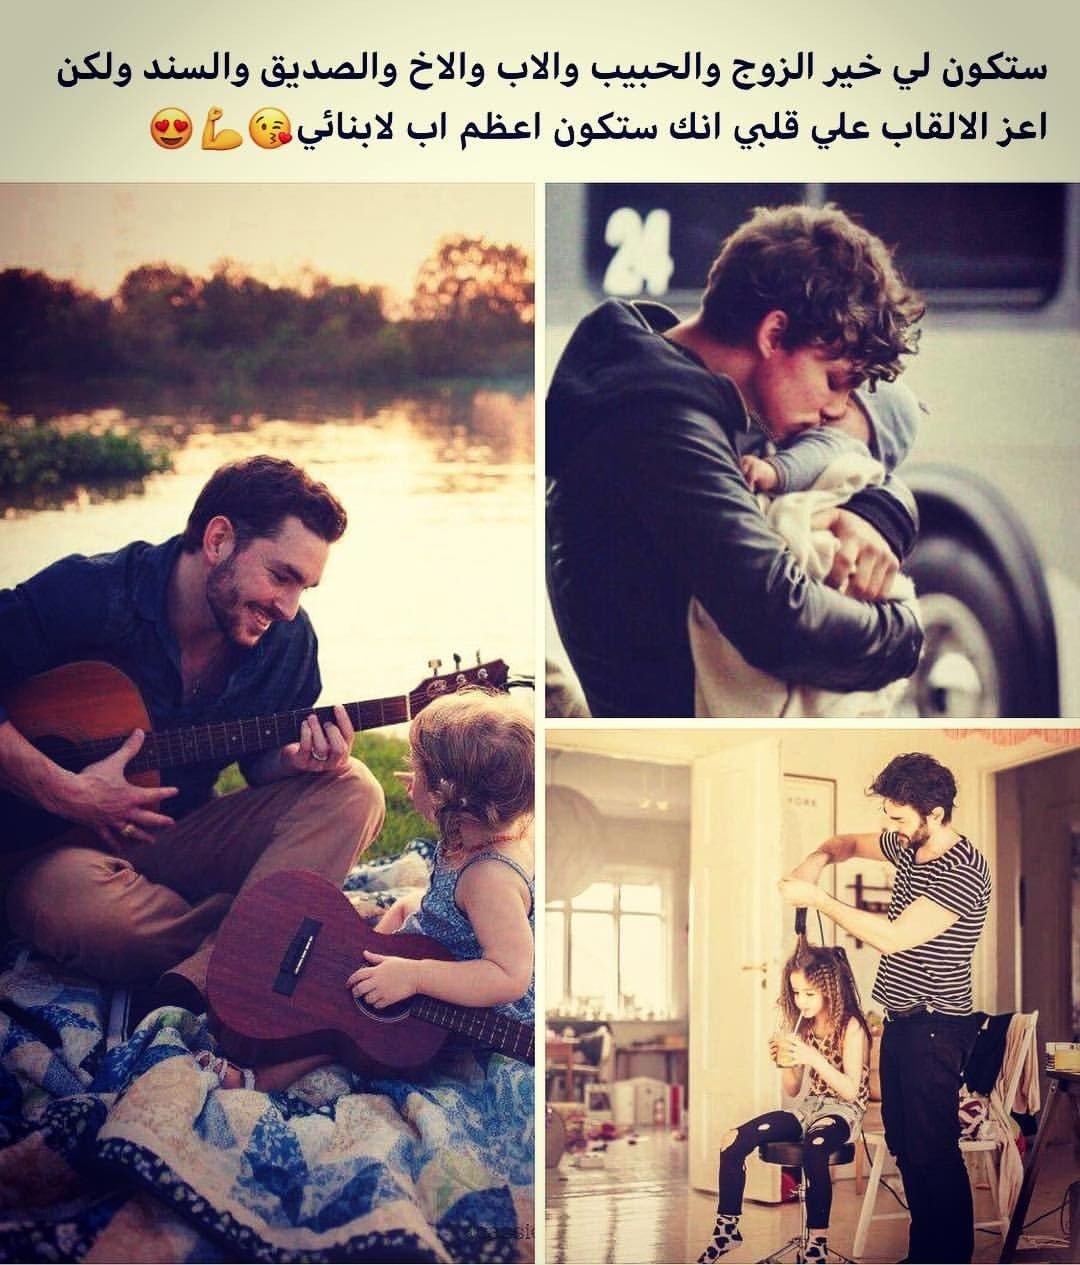 Pin By Marwa Aleraky On Text Arabic Arabic Love Quotes Cute Love Images Beautiful Arabic Words